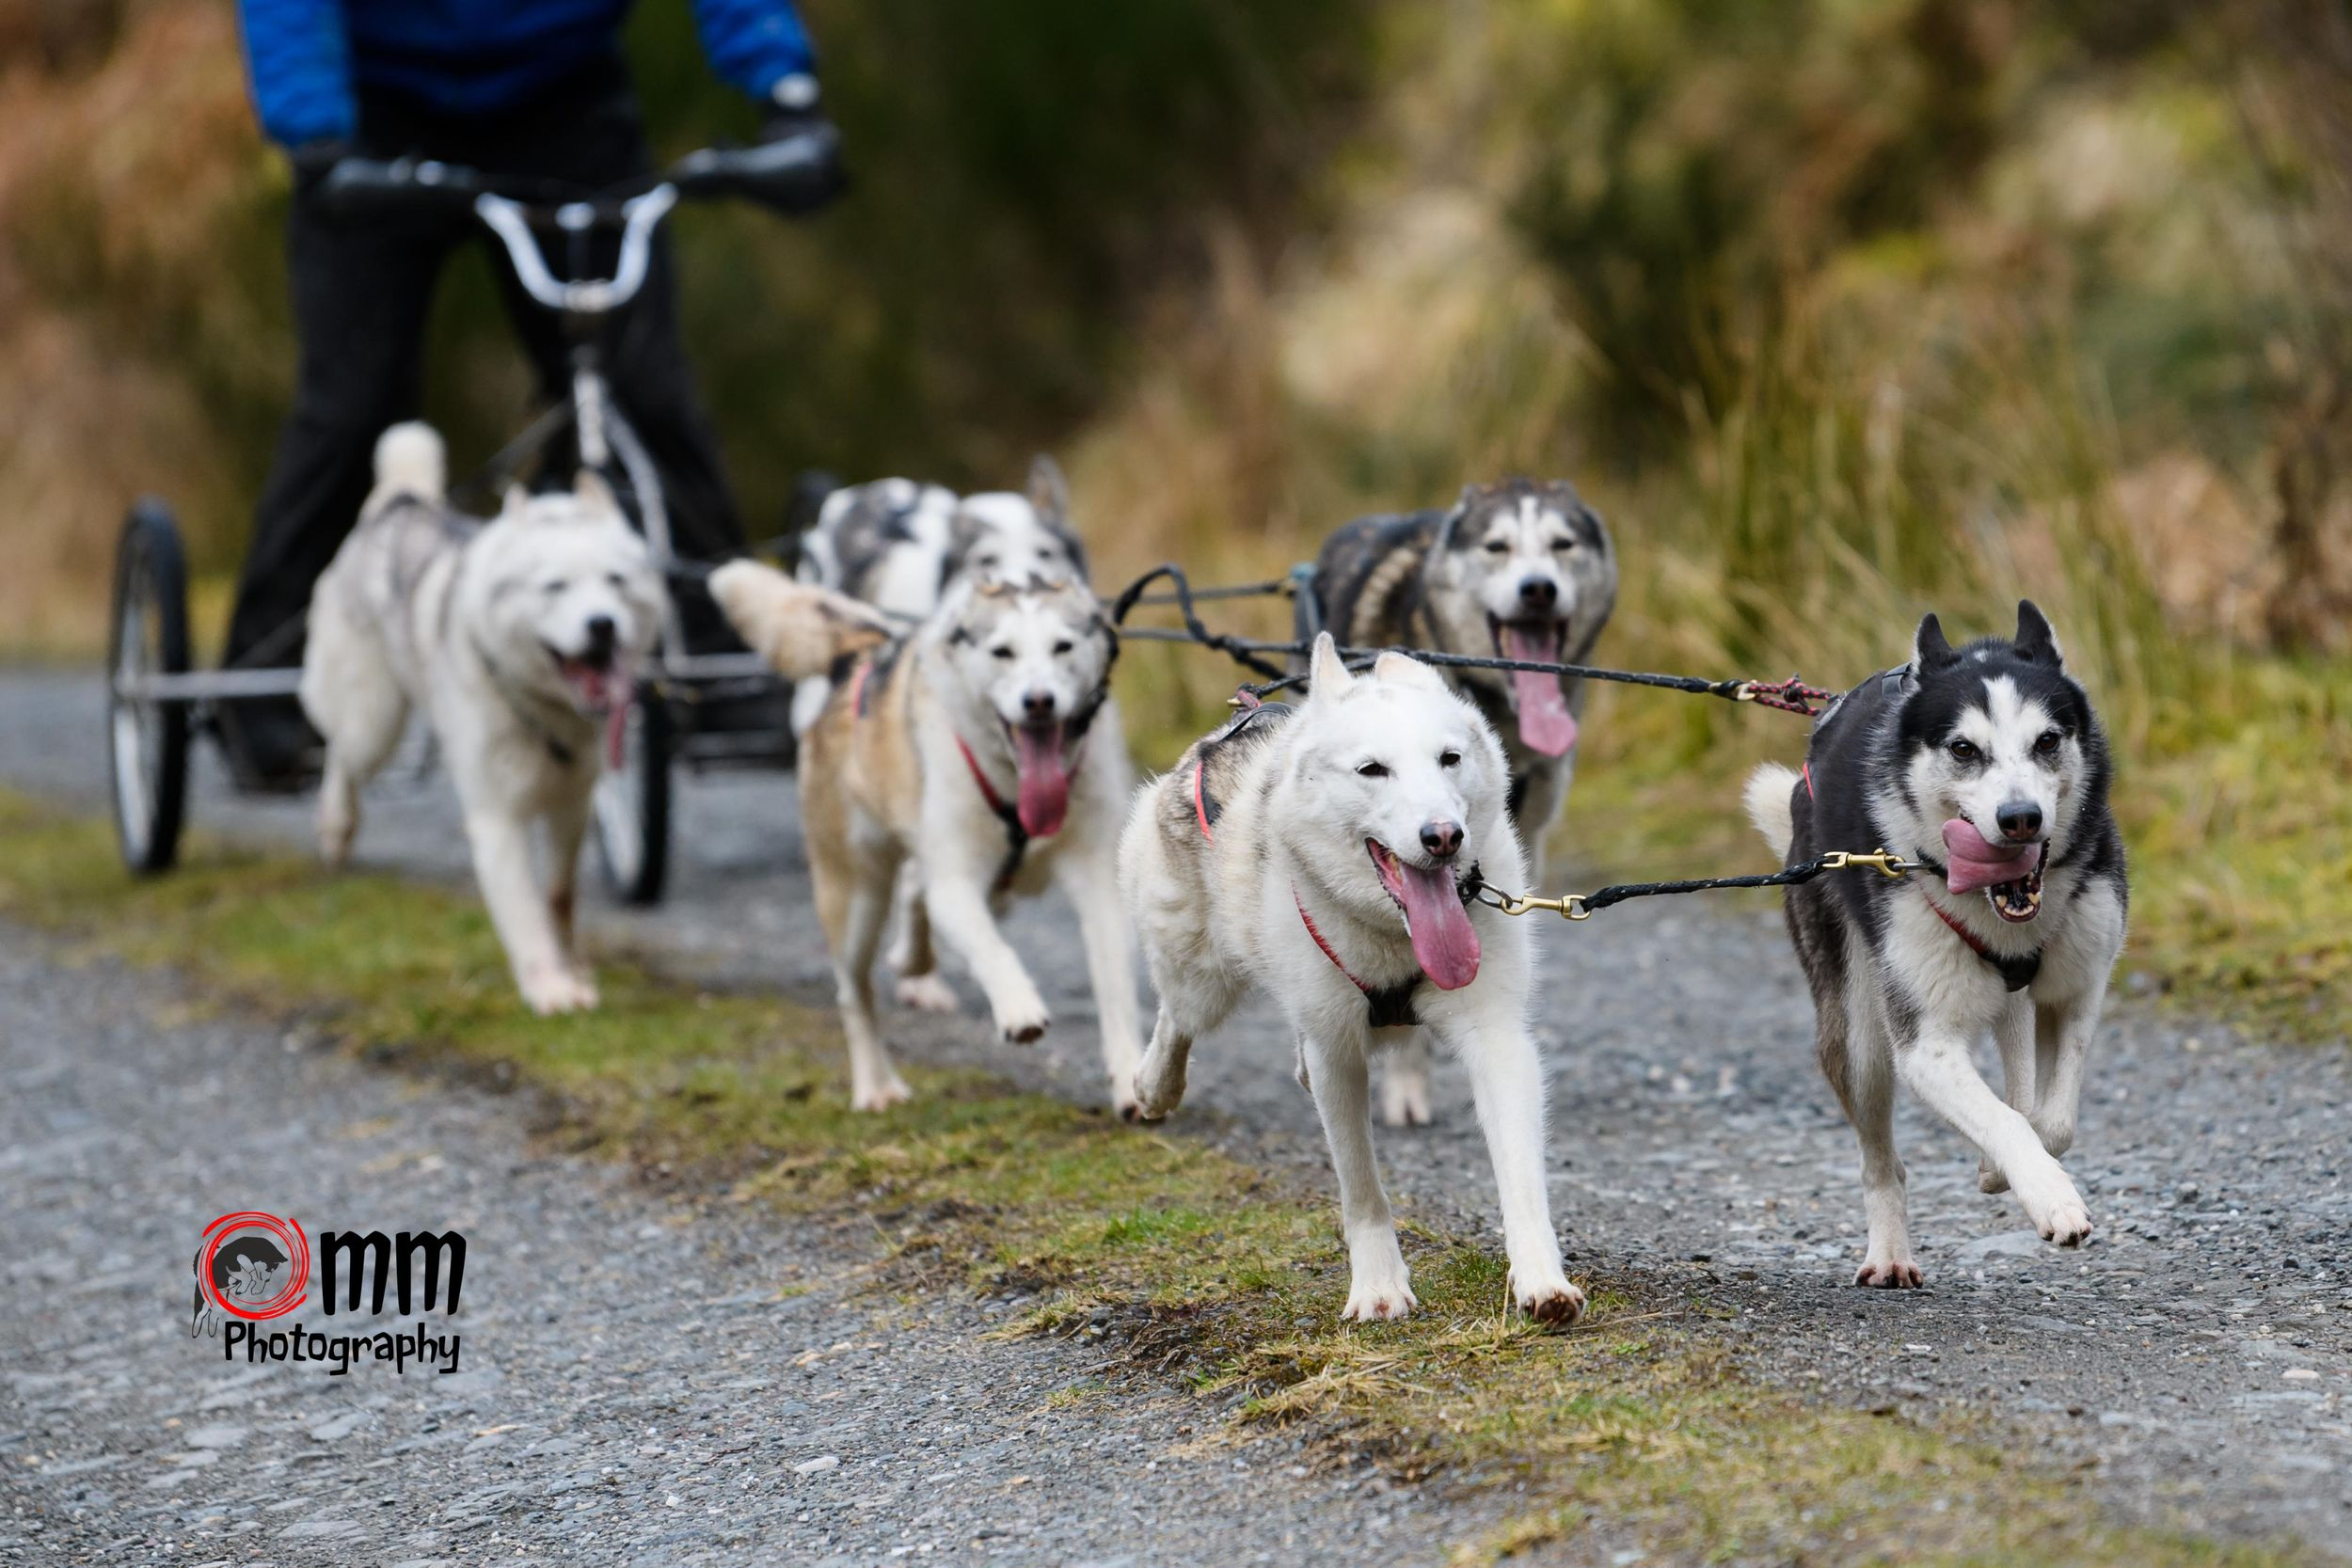 Glasgow event photographer, Glasgow dog photographer, working dogs, sled dogs, agility, flyball